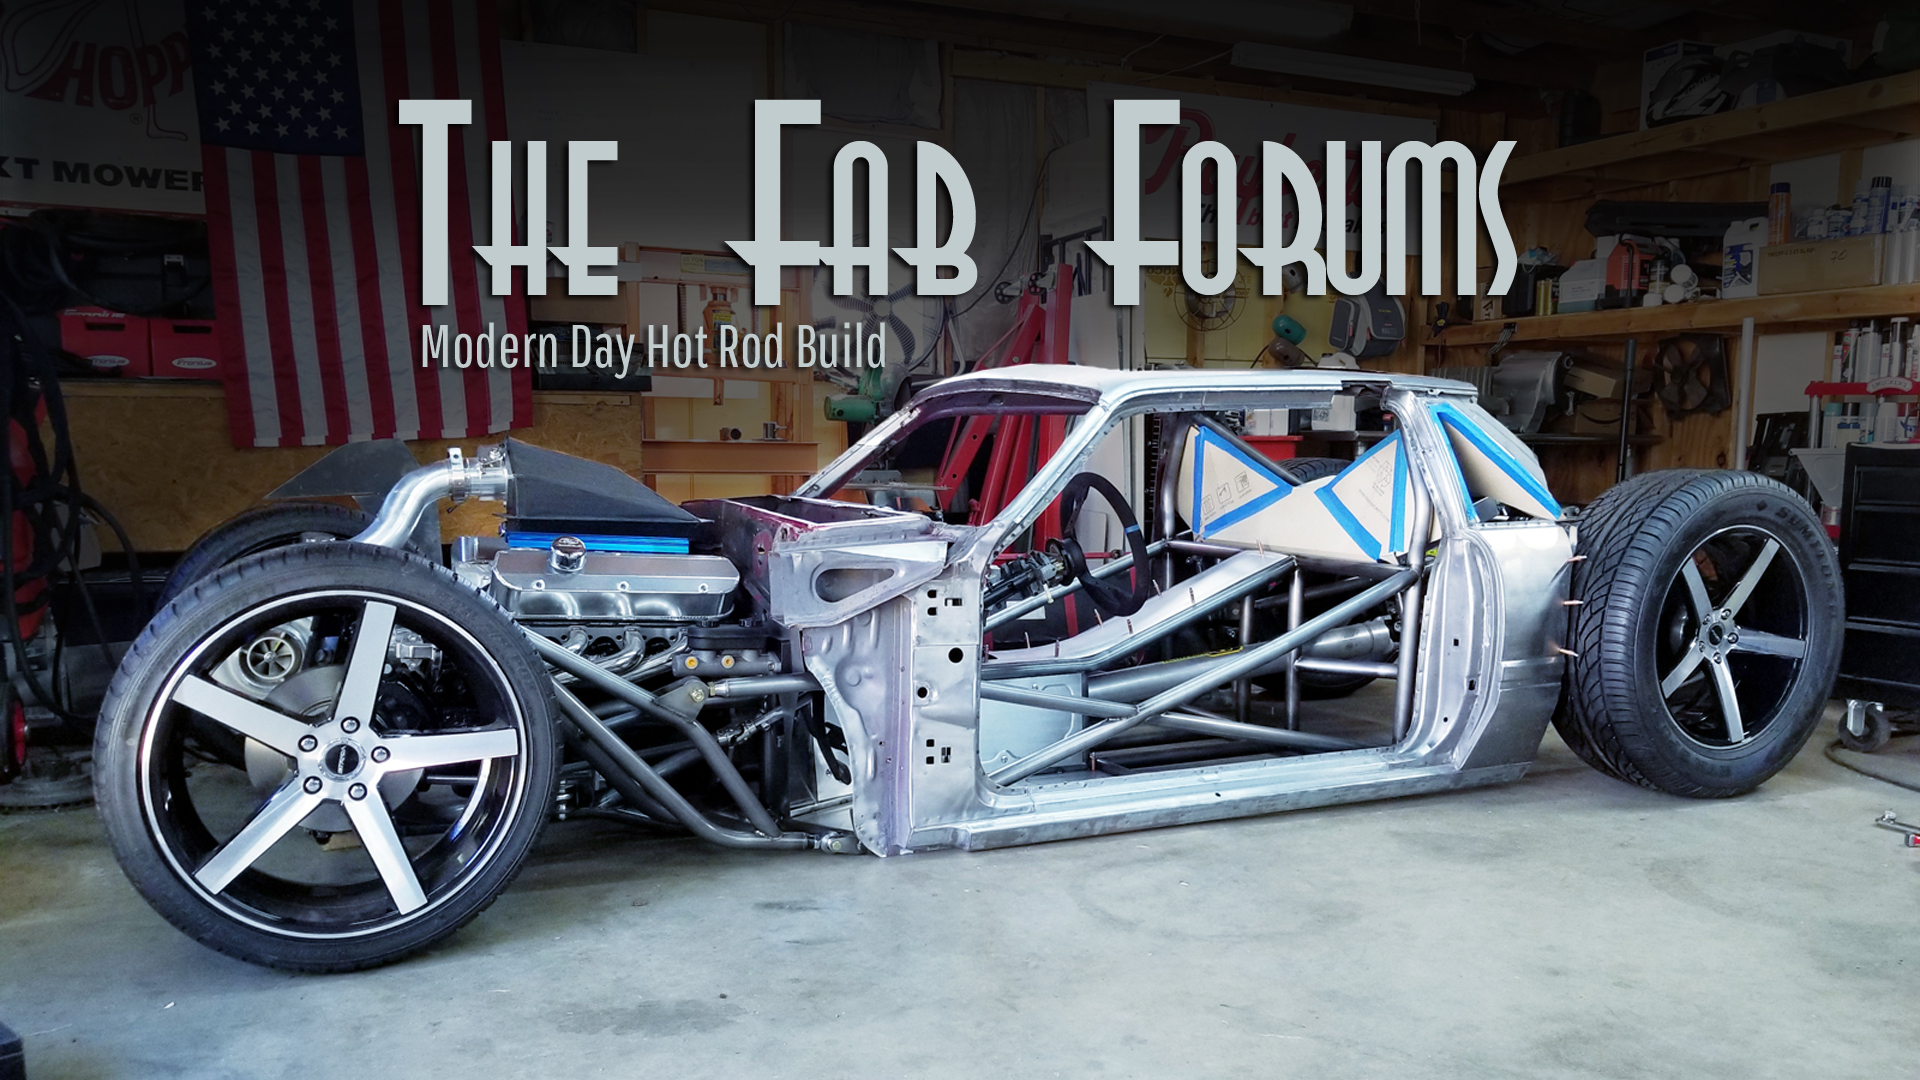 Modern Day Hot Rod Build